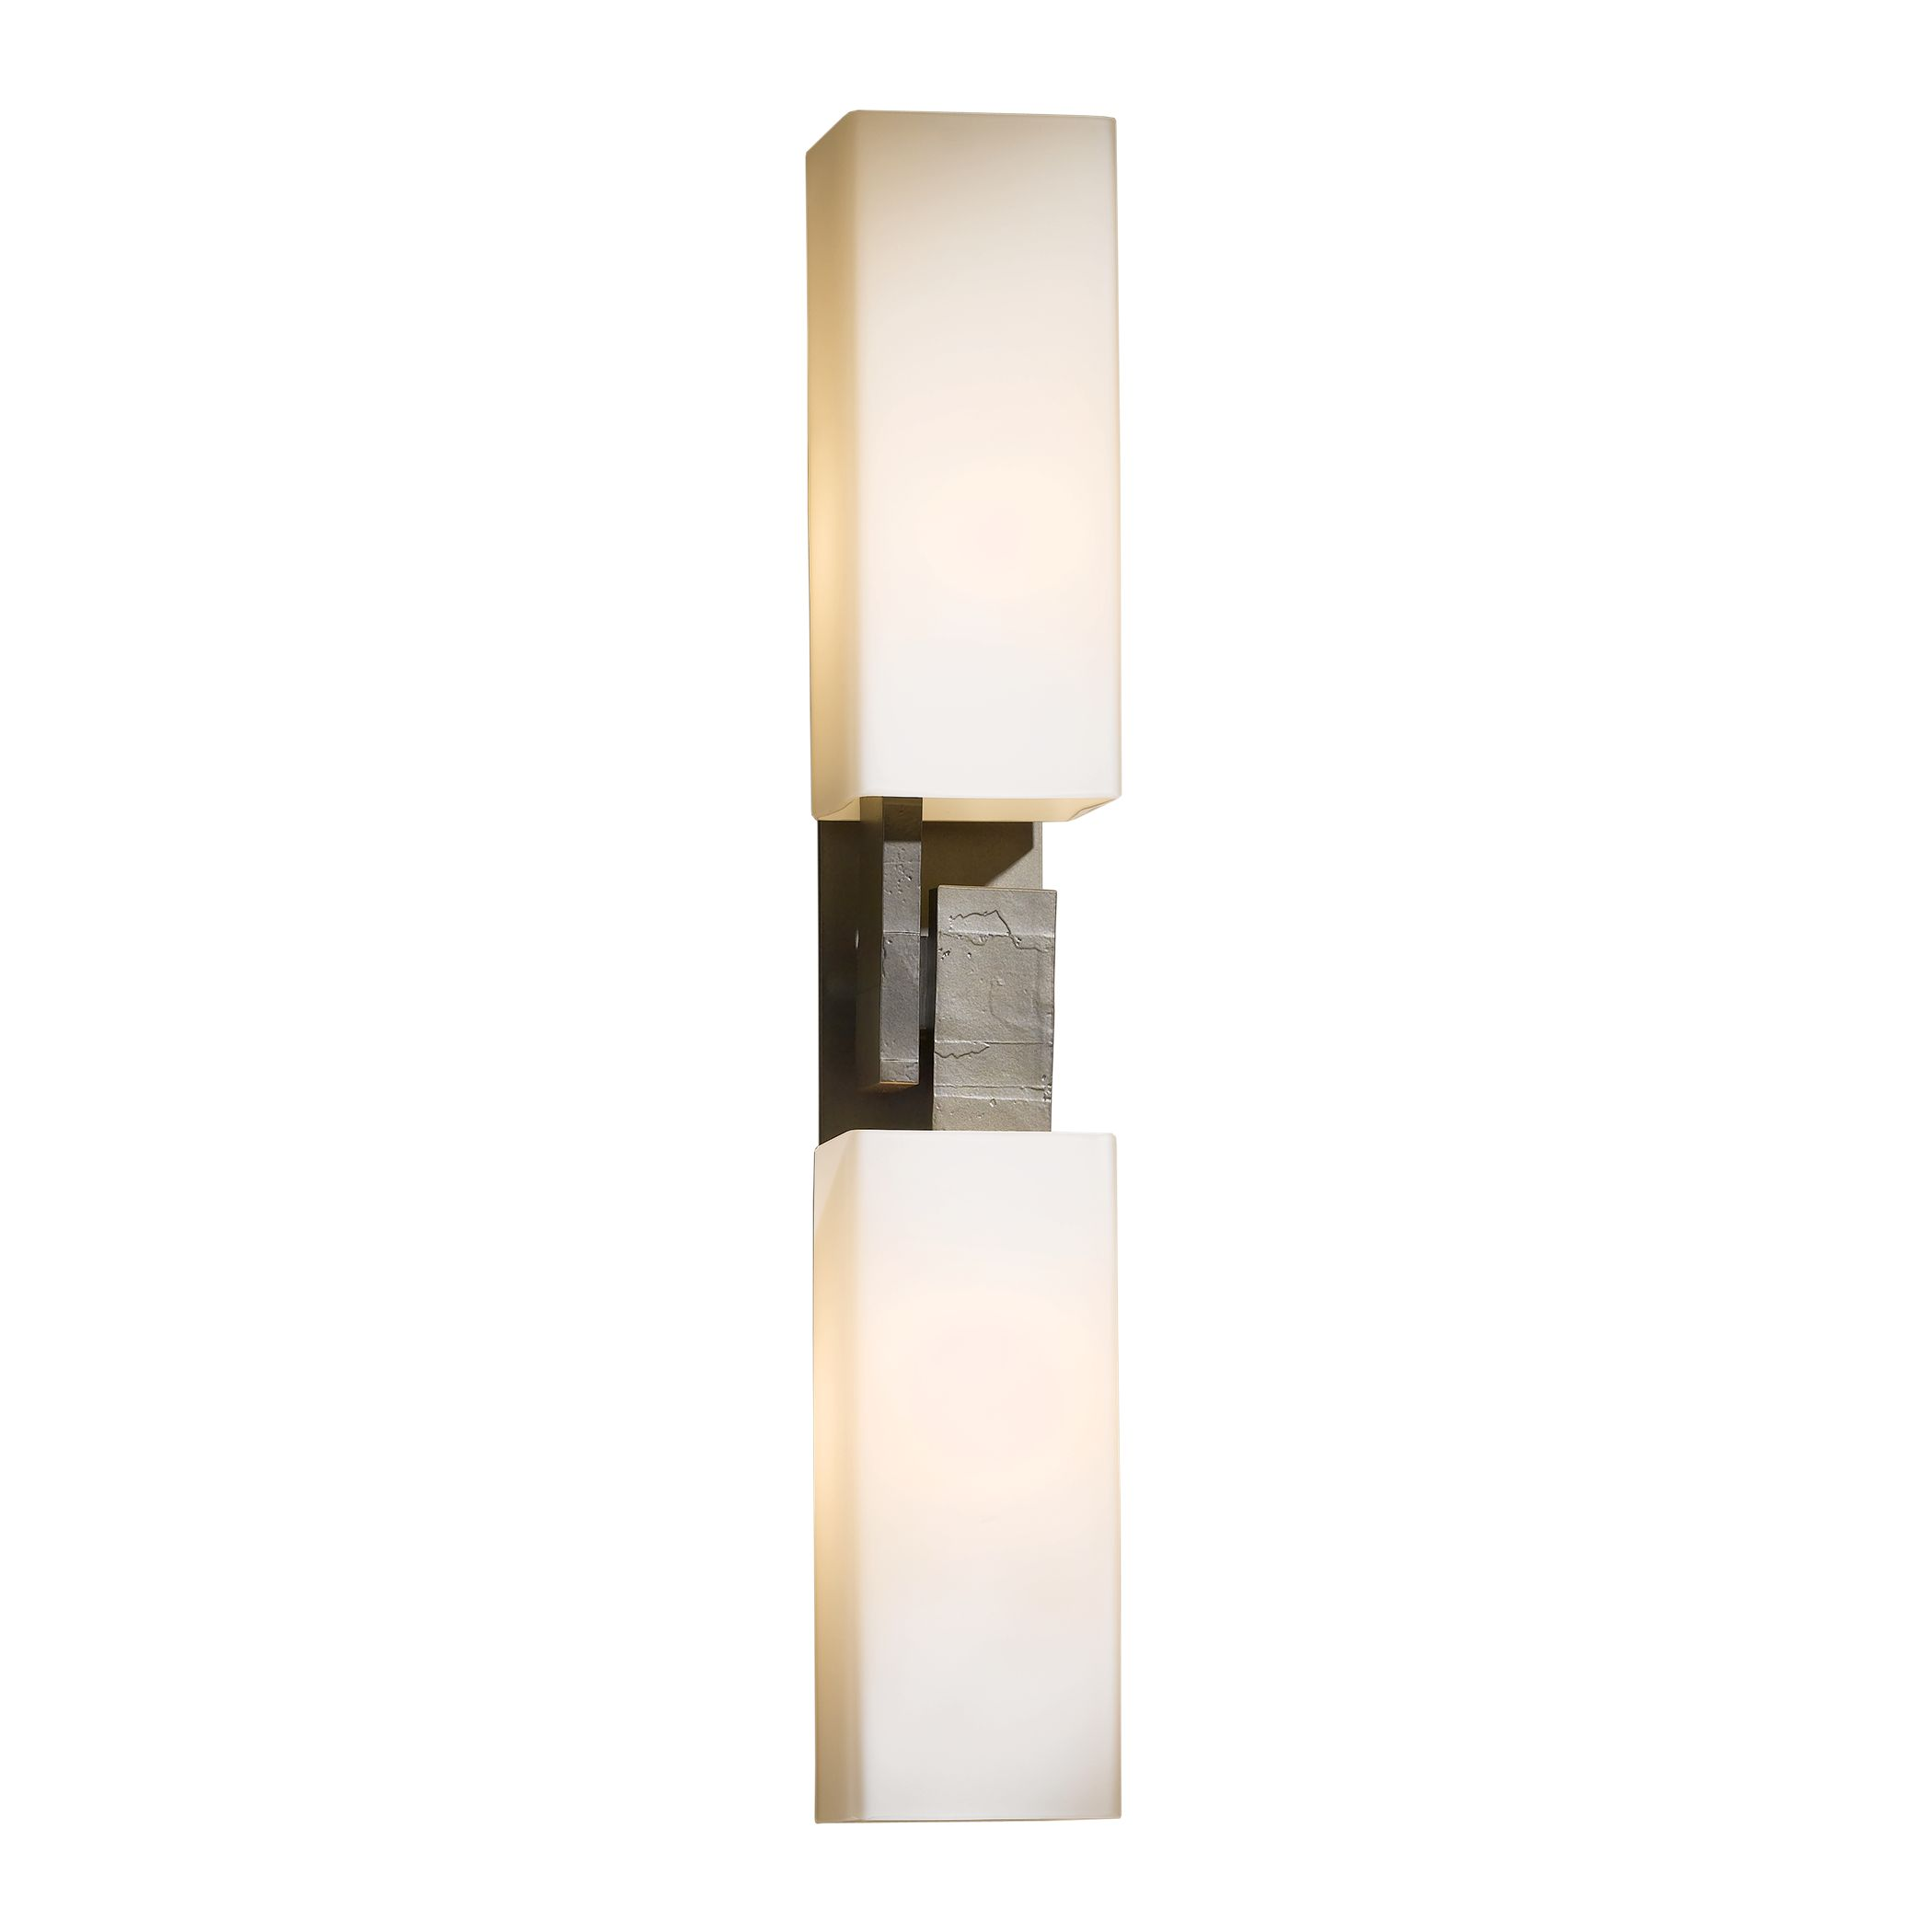 Thumbnail for Ondrian 2 Light Sconce